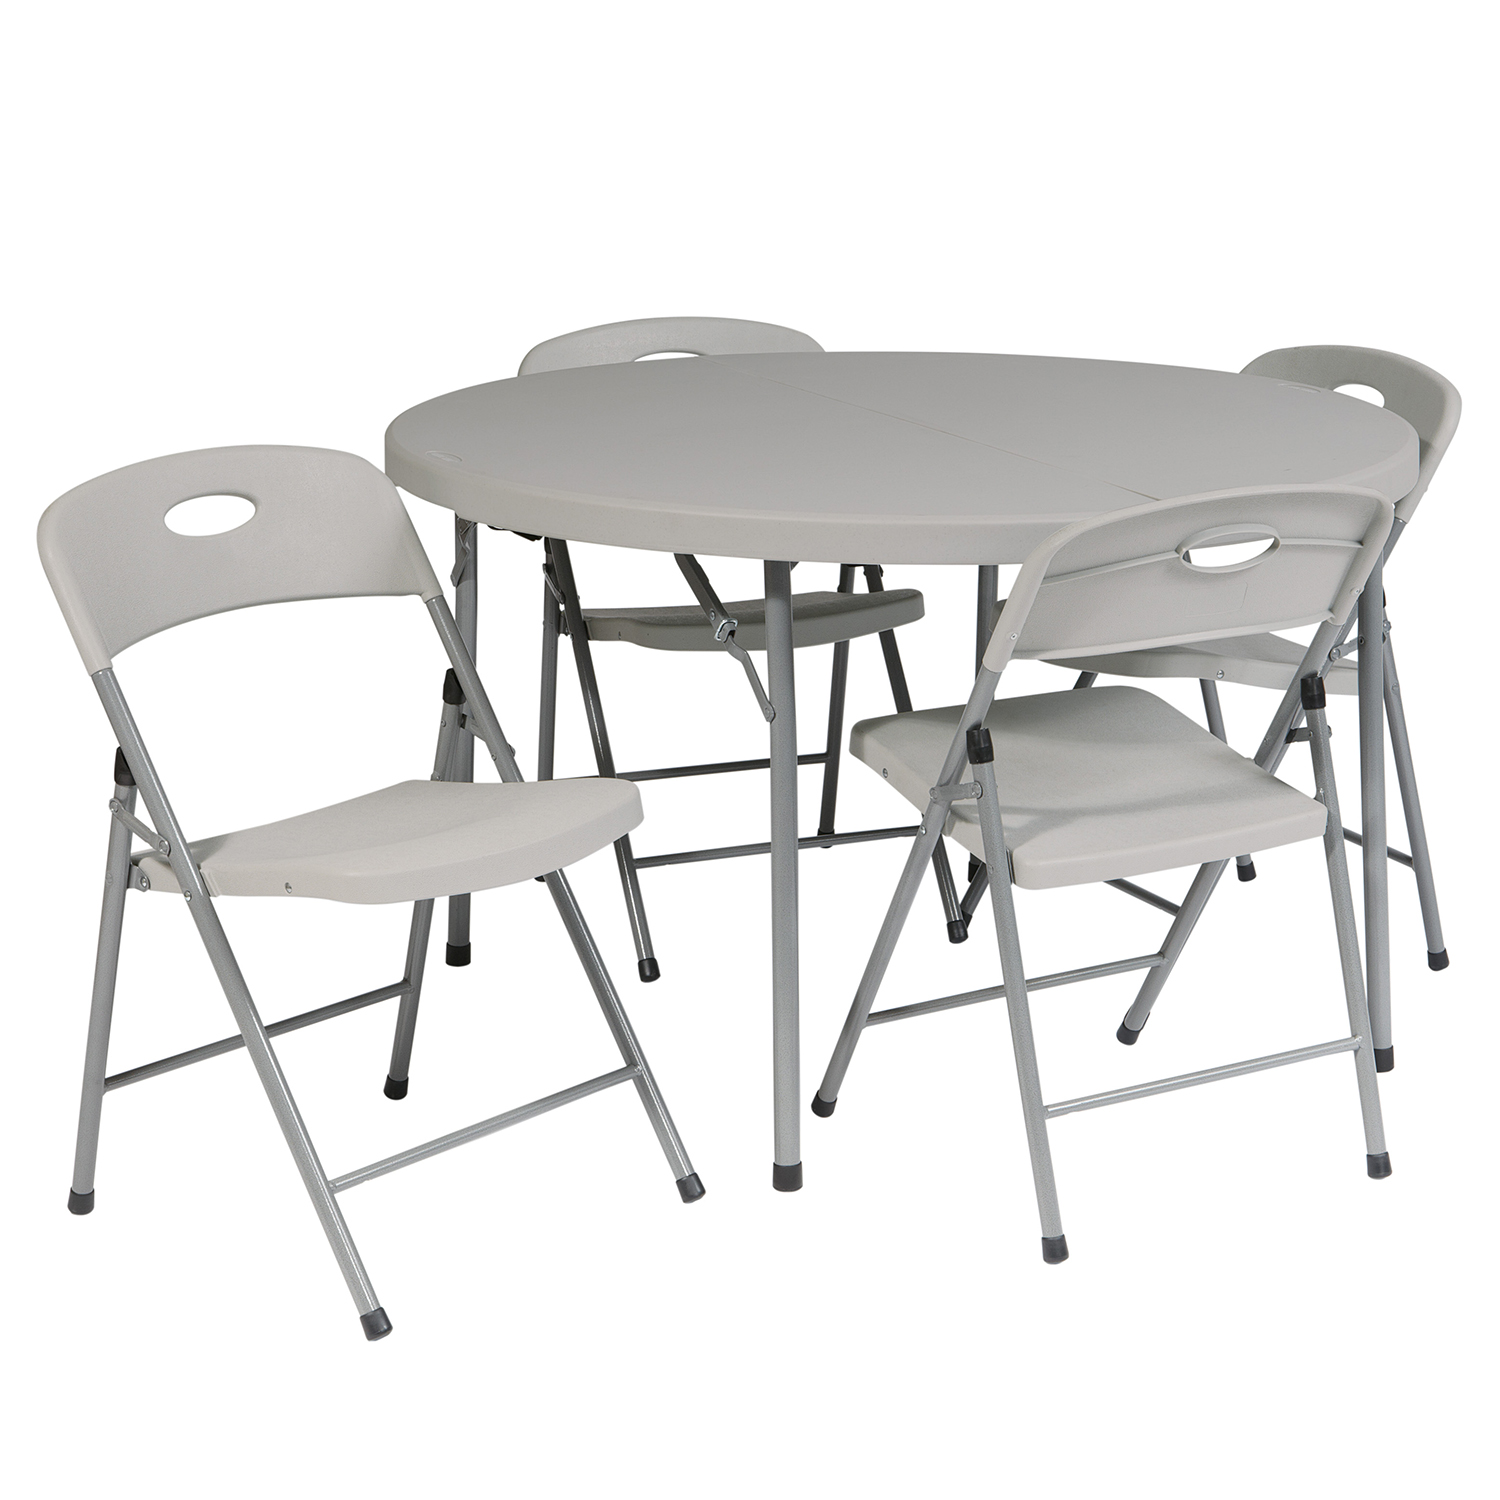 Gray Folding Round Table & Chairs 5-Piece Set